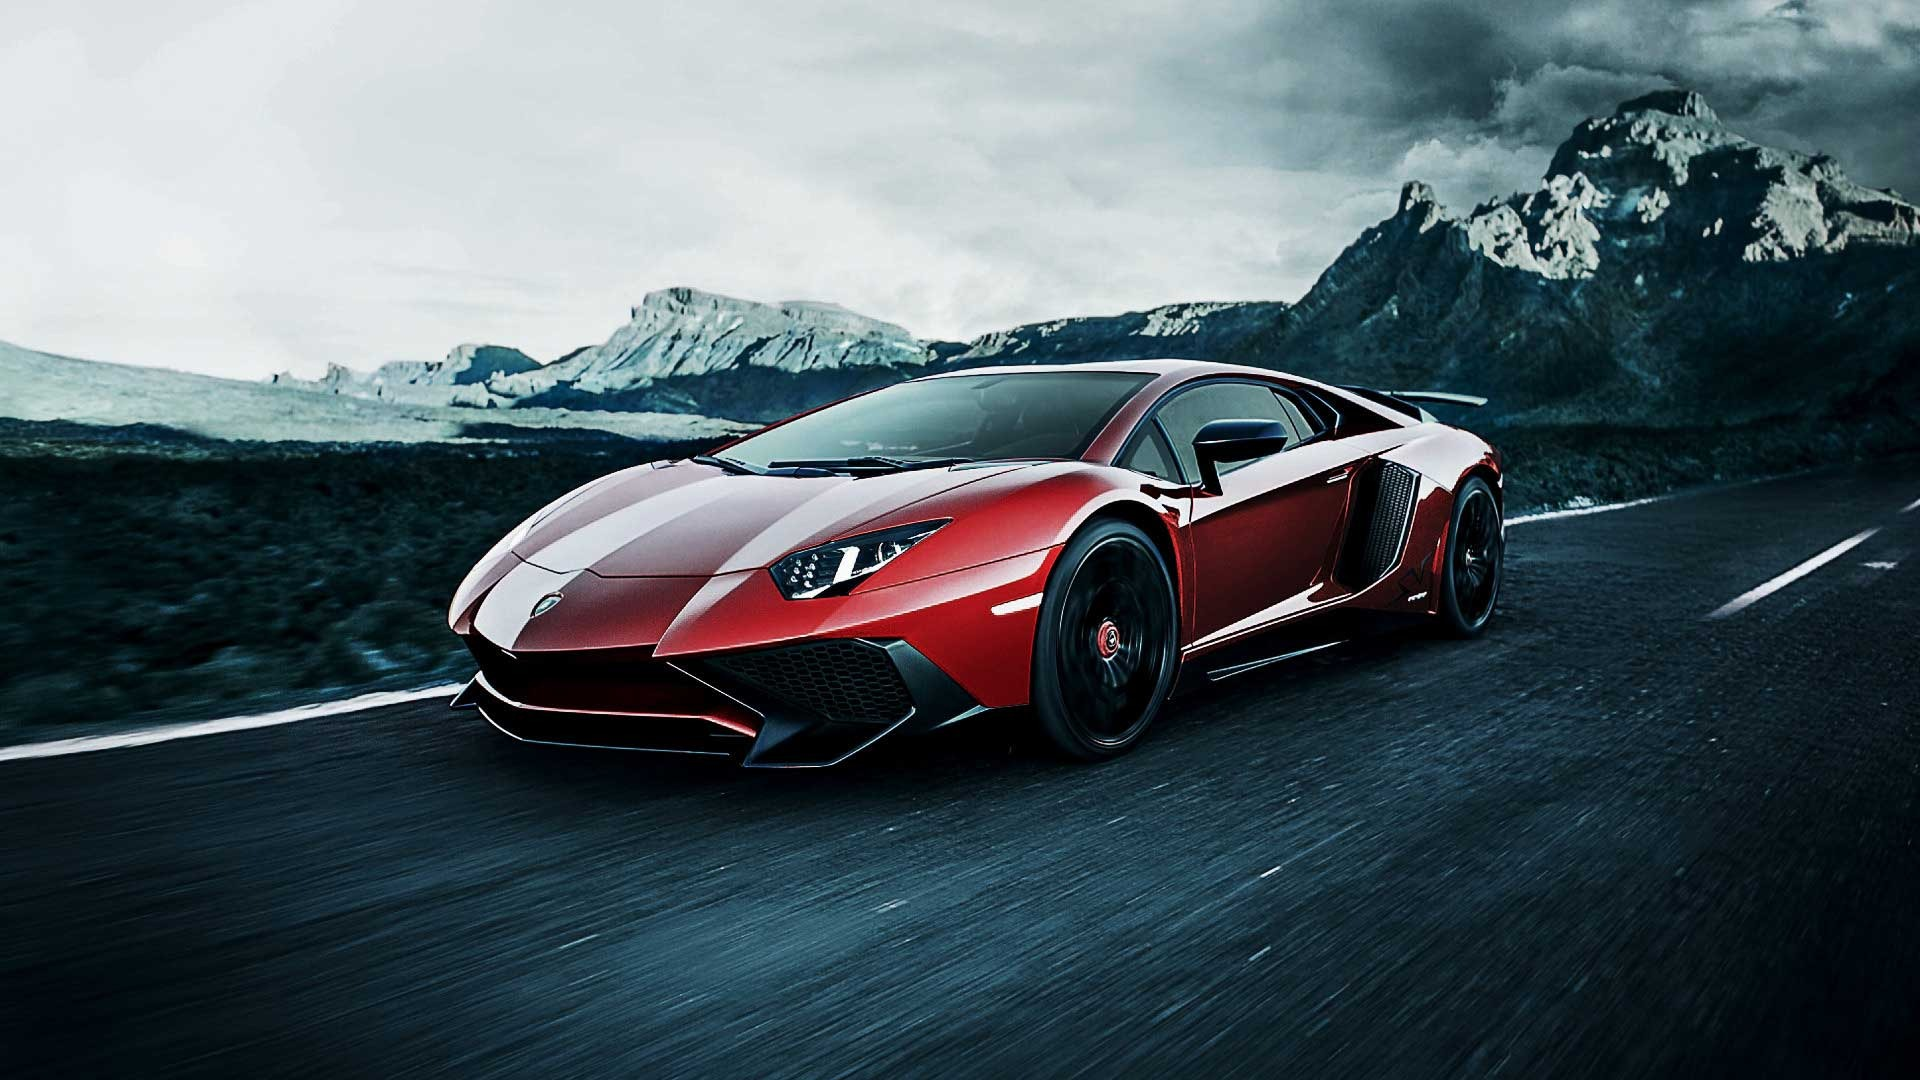 Red Lamborghini on a Speed Road 124.96 Kb